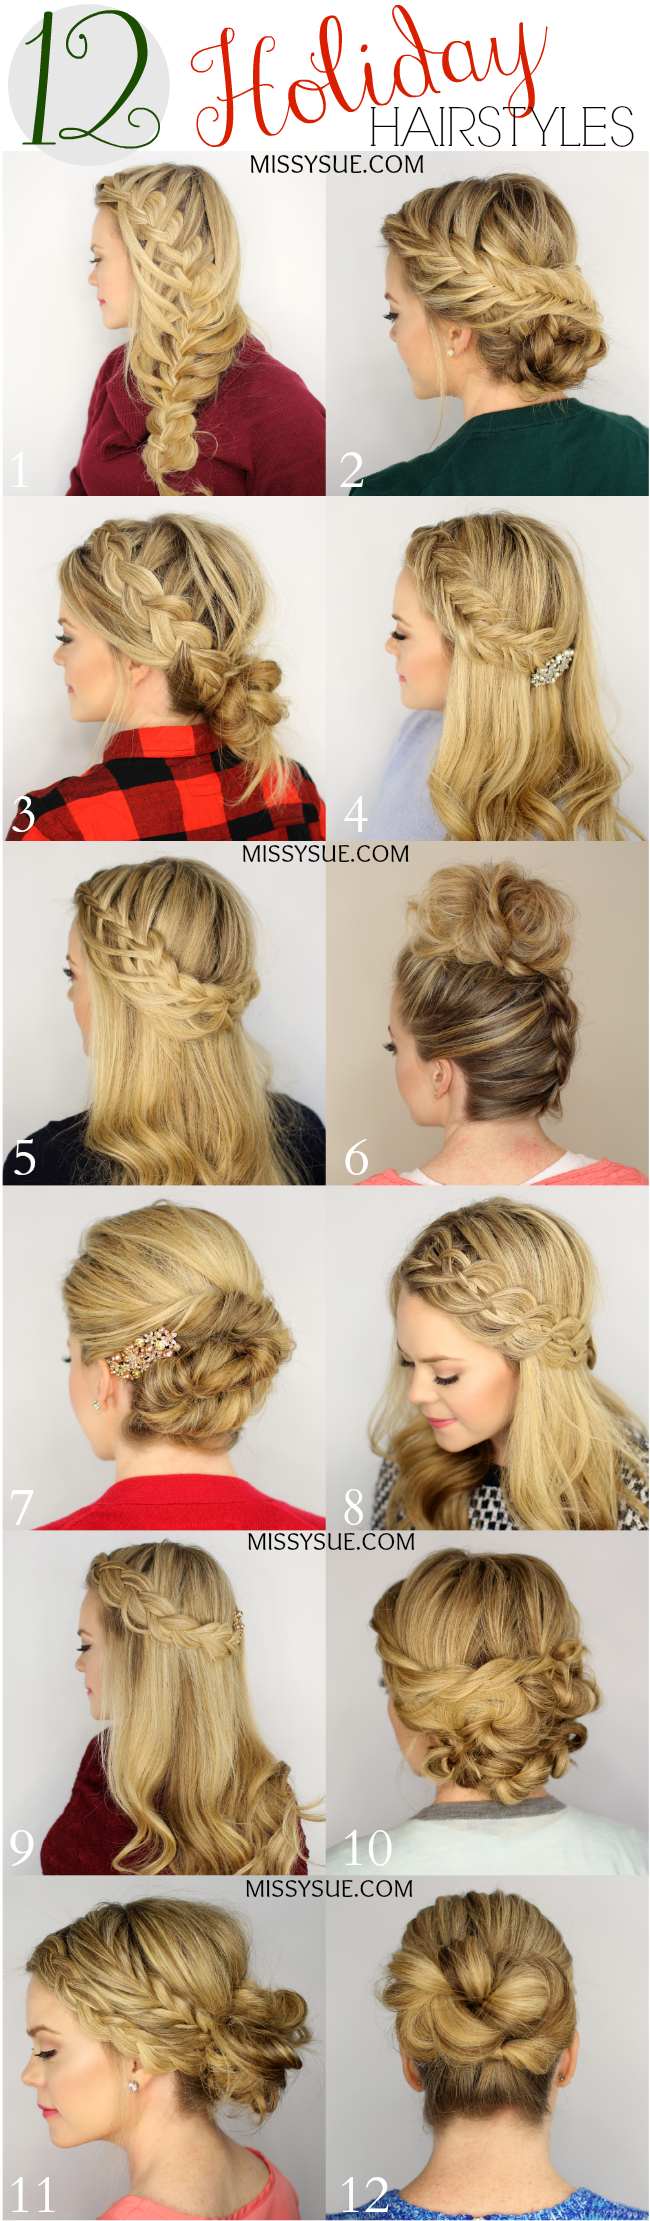 holiday hairstyles for party pinterest holidays hair style